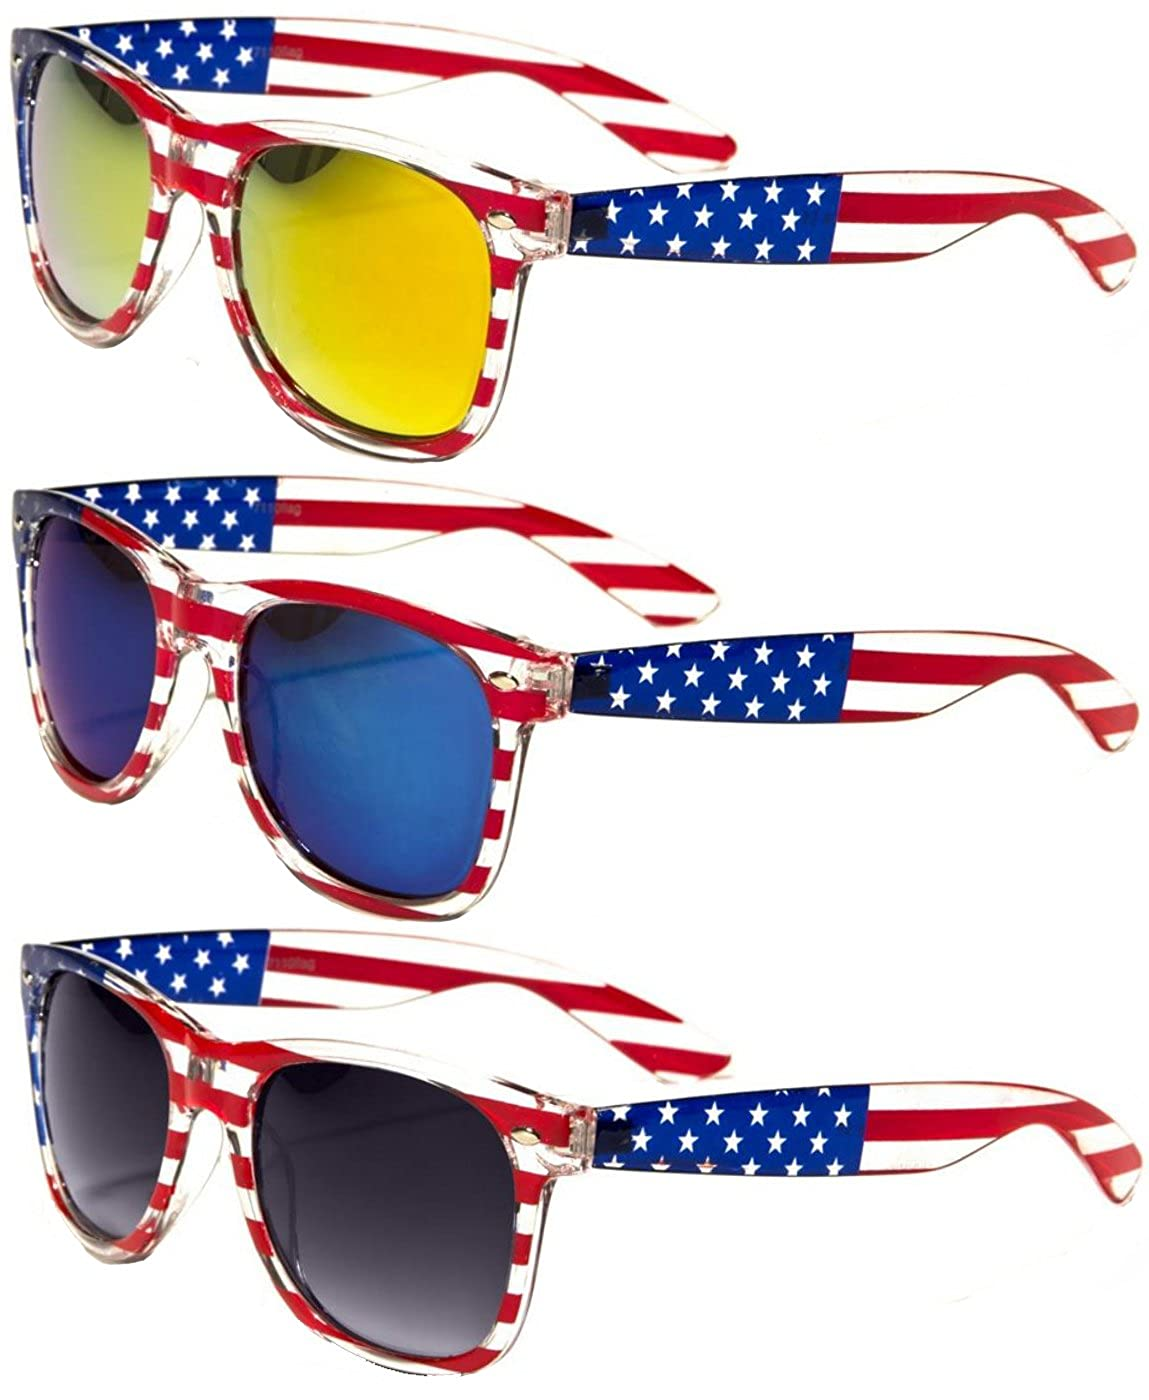 754dcbba498b Lens width  50 mm. Comes with it s own Vision World Microfiber storage  pouch. Transparent classic wayfarer frame with USA flag print